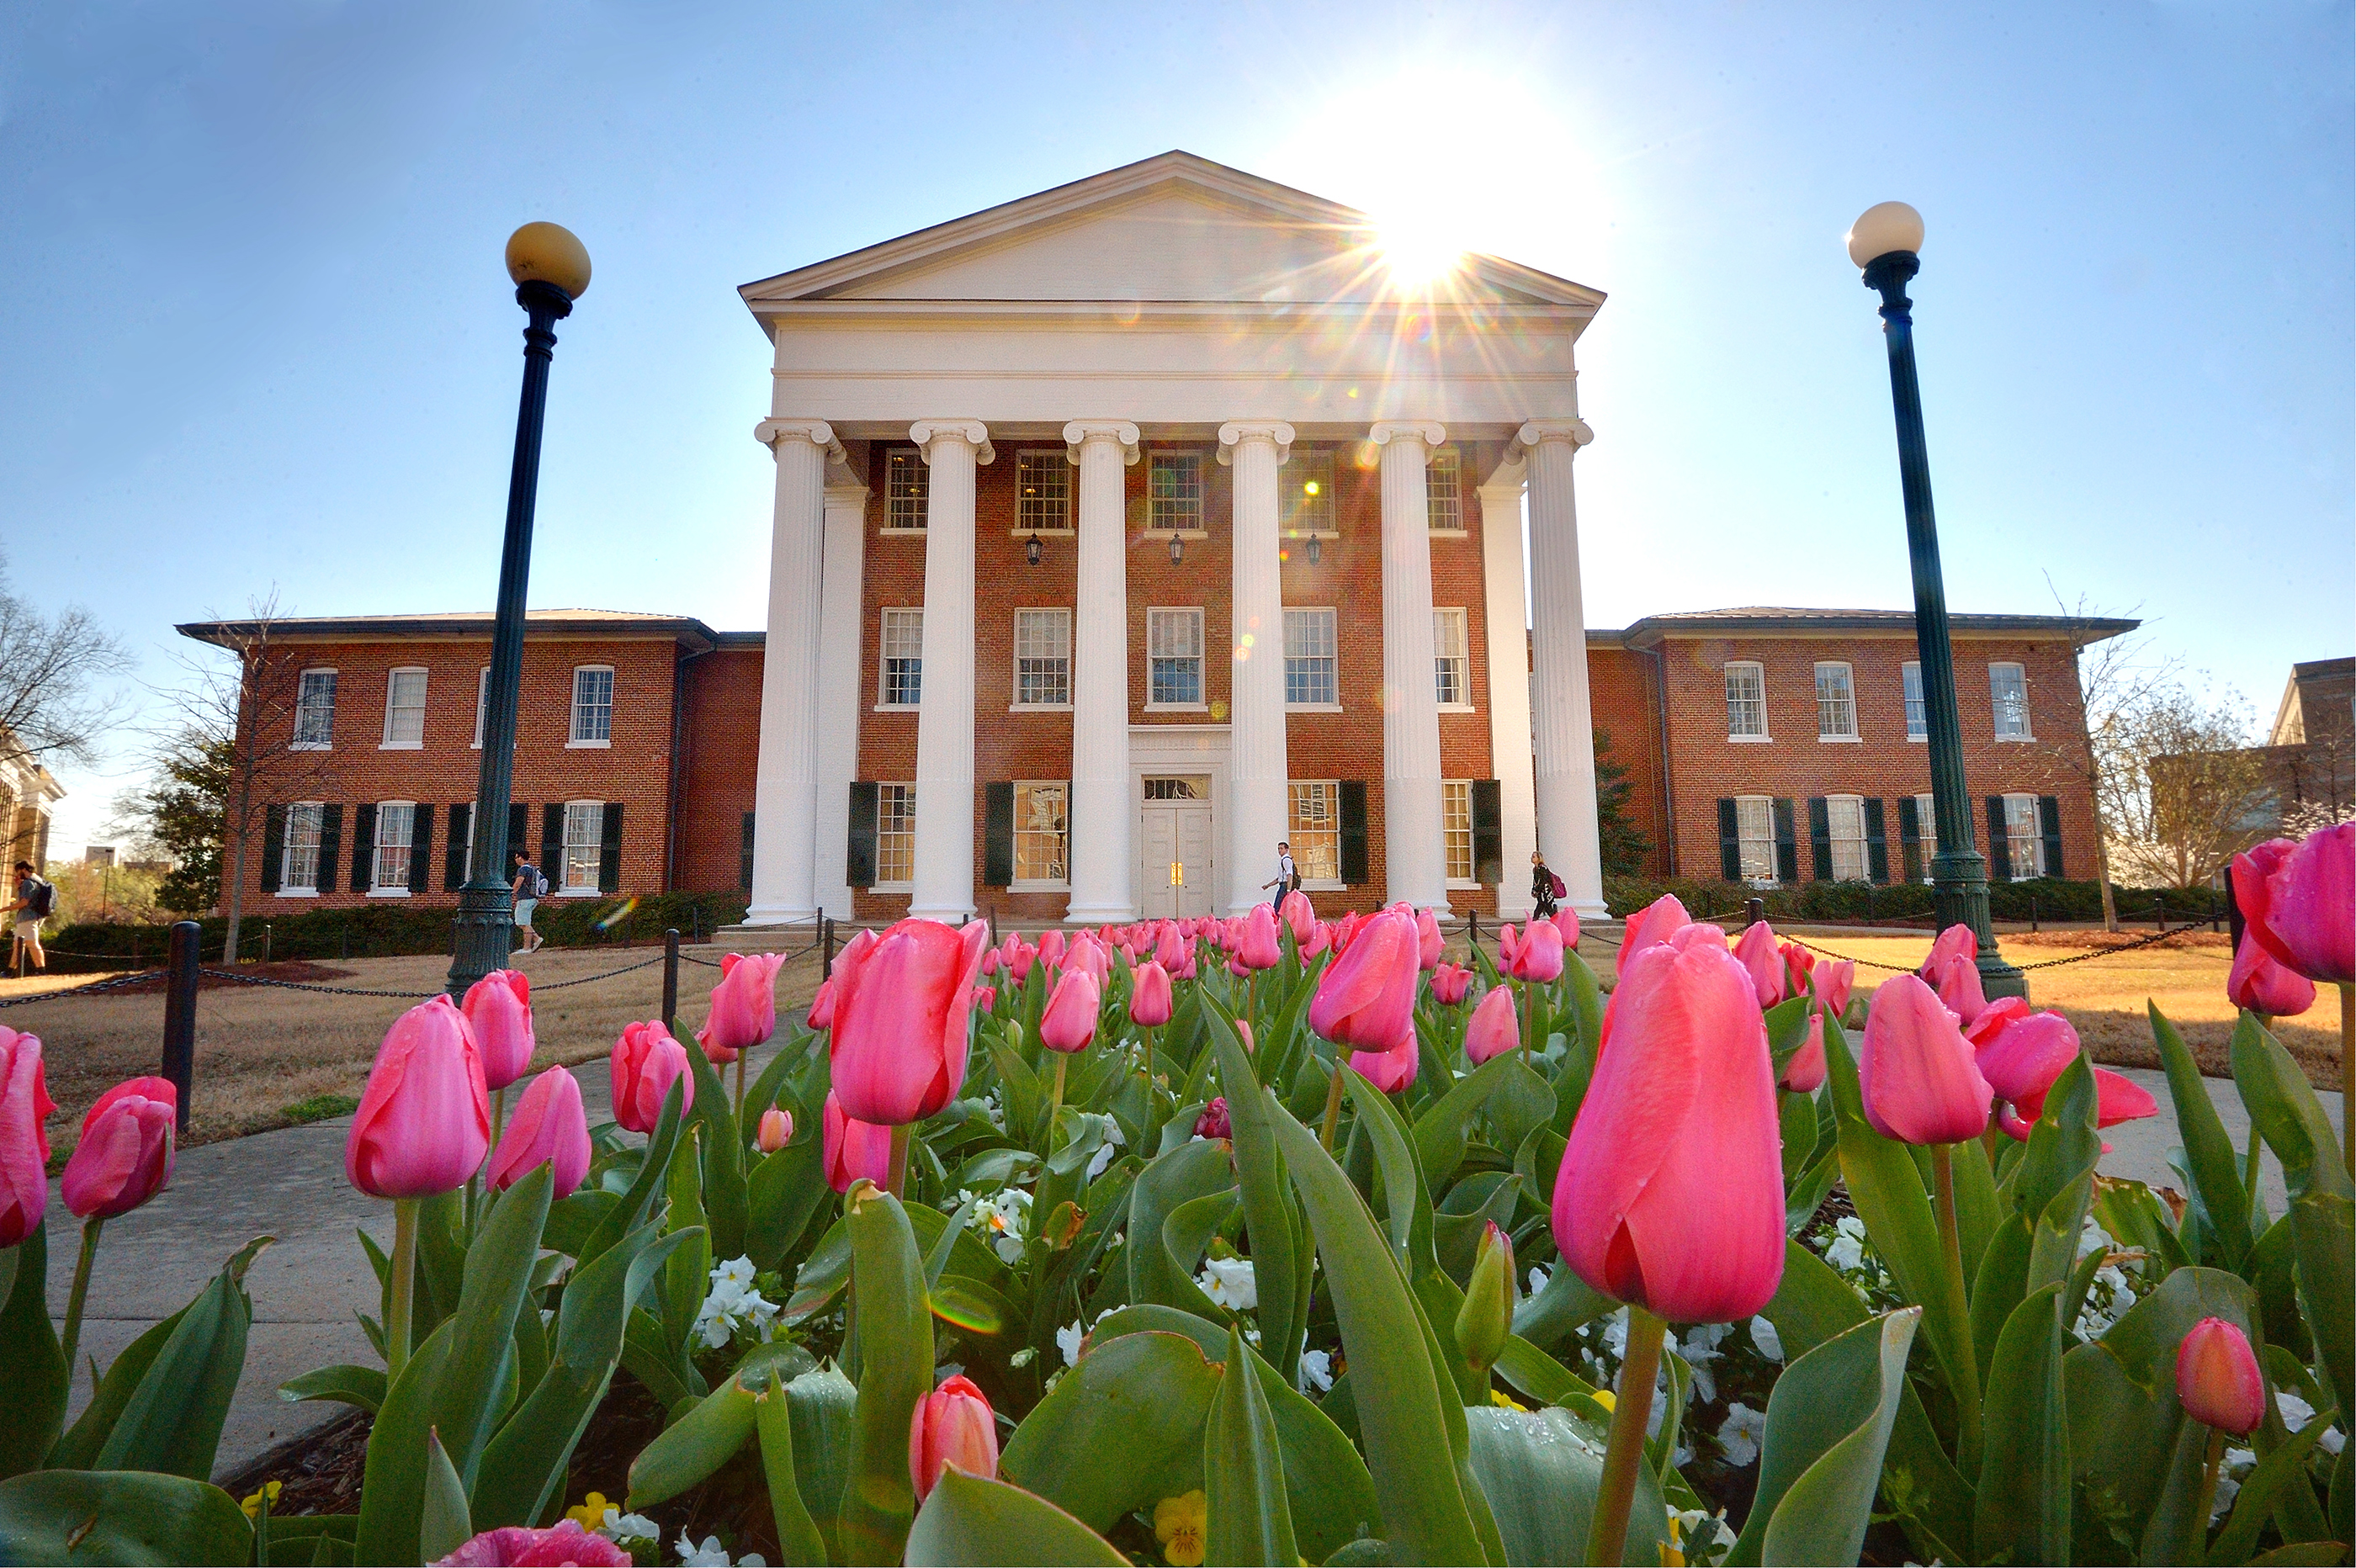 170815-merit-colleges-by-state-university-of-mississippi